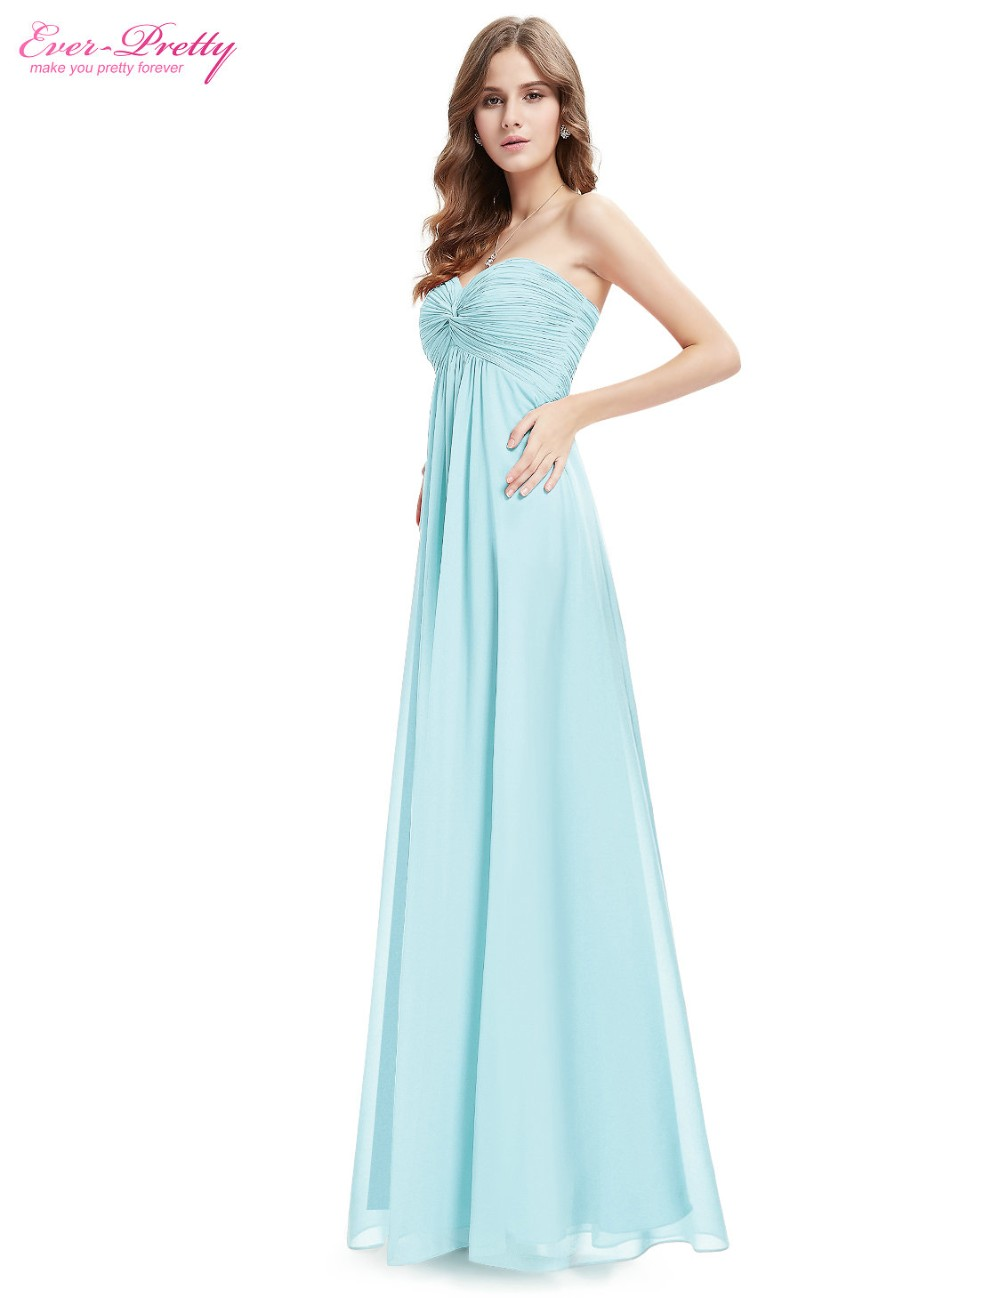 [Clearance Sale] Chiffon Evening Dresses Ever Pretty ...